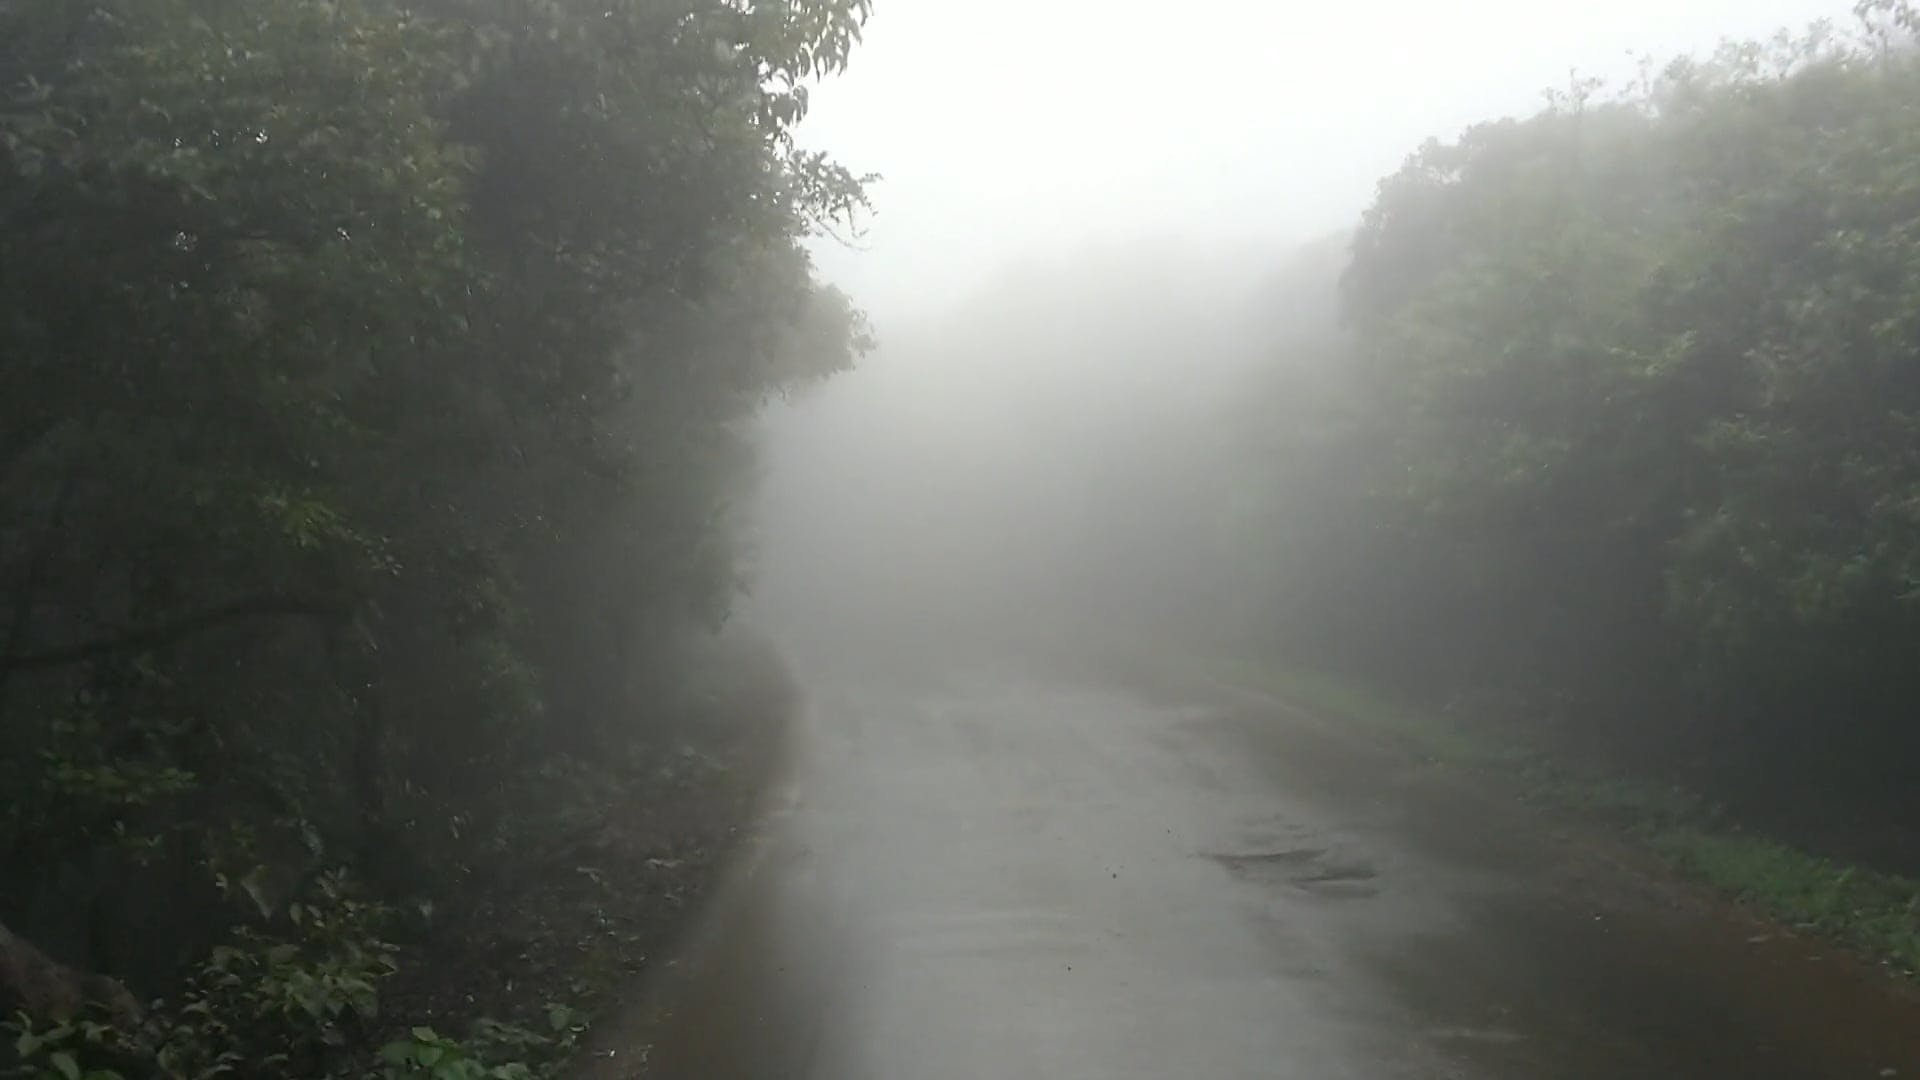 Driving Along A Foggy Road